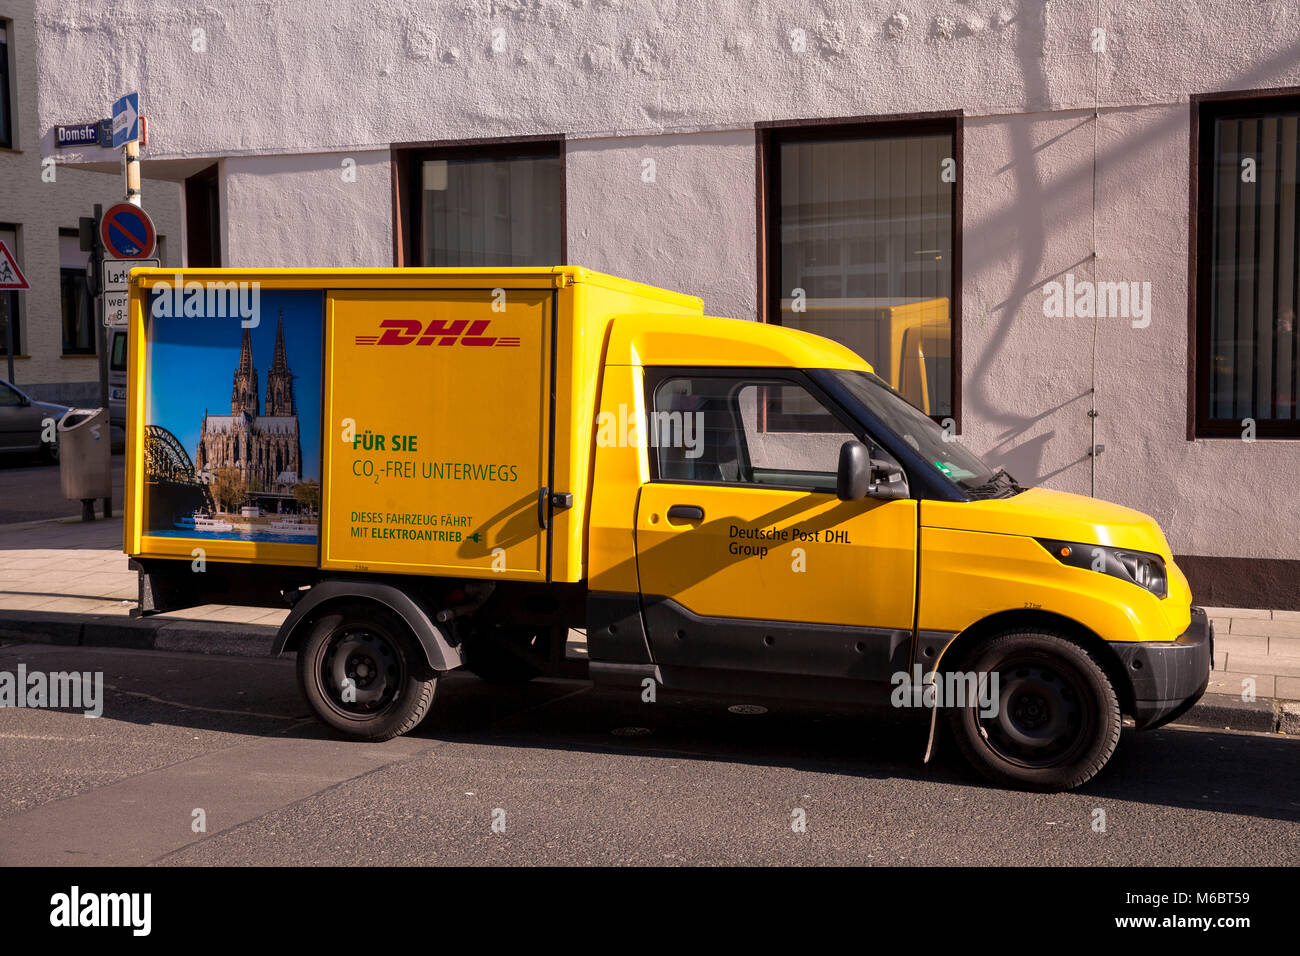 Germany, Cologne, DHL parcel service electric vehicle Streetscooter.  Deutschland, Koeln, DHL- Elektrofahrzeug Streetscooter. Stock Photo